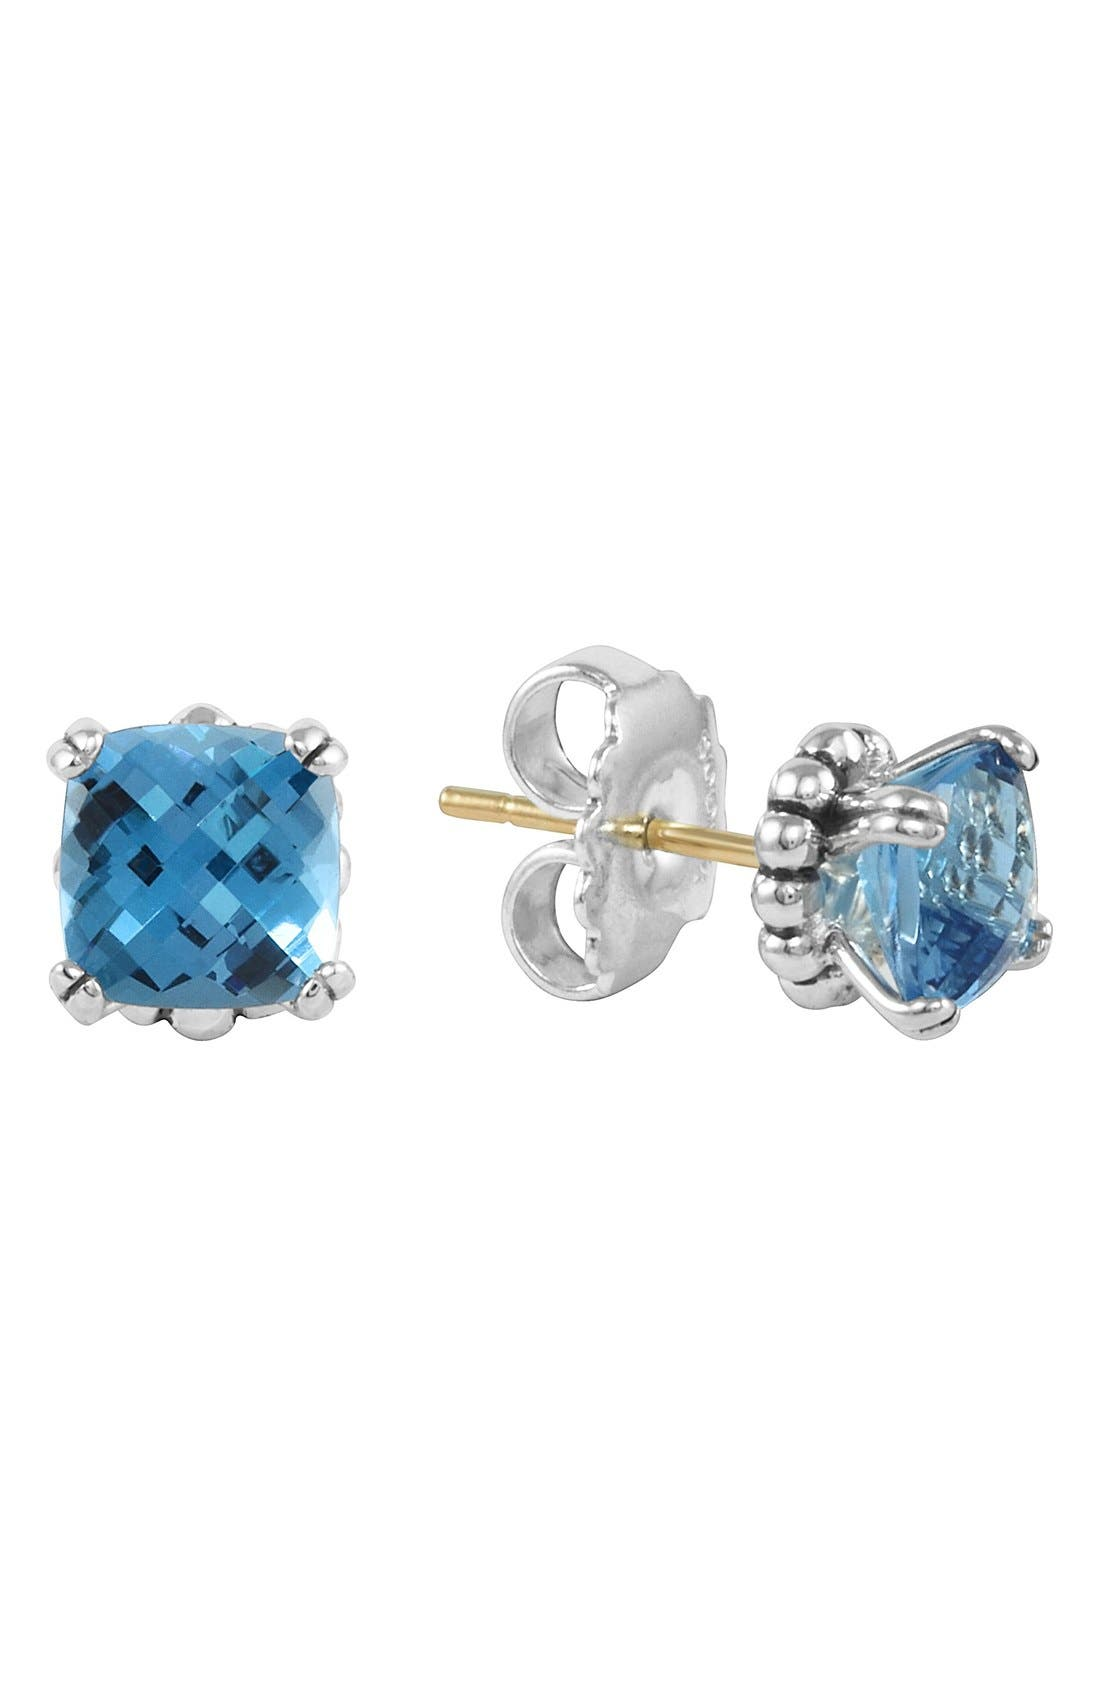 'Prism' Stud Earrings,                         Main,                         color, SILVER/ BLUE TOPAZ